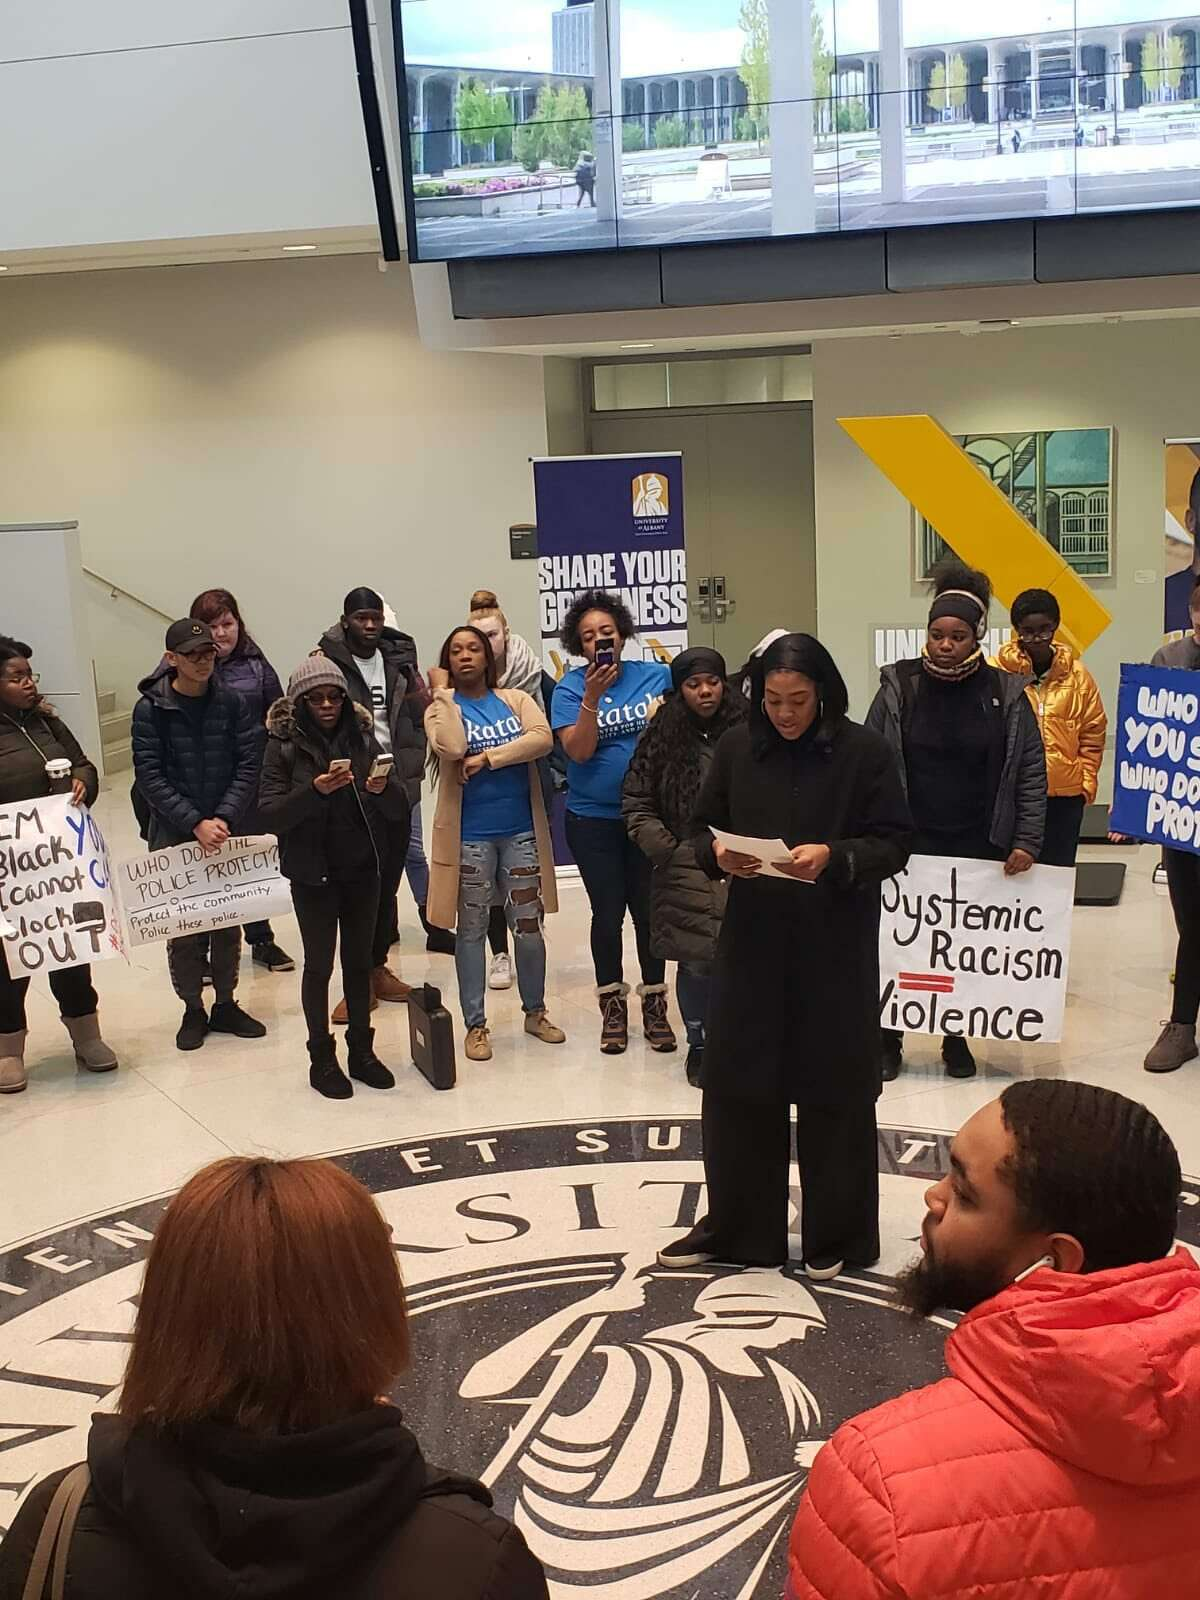 On Fri, Nov. 8, 2019, students at University at Albany protest use of force by police during arrest at Campus Center.